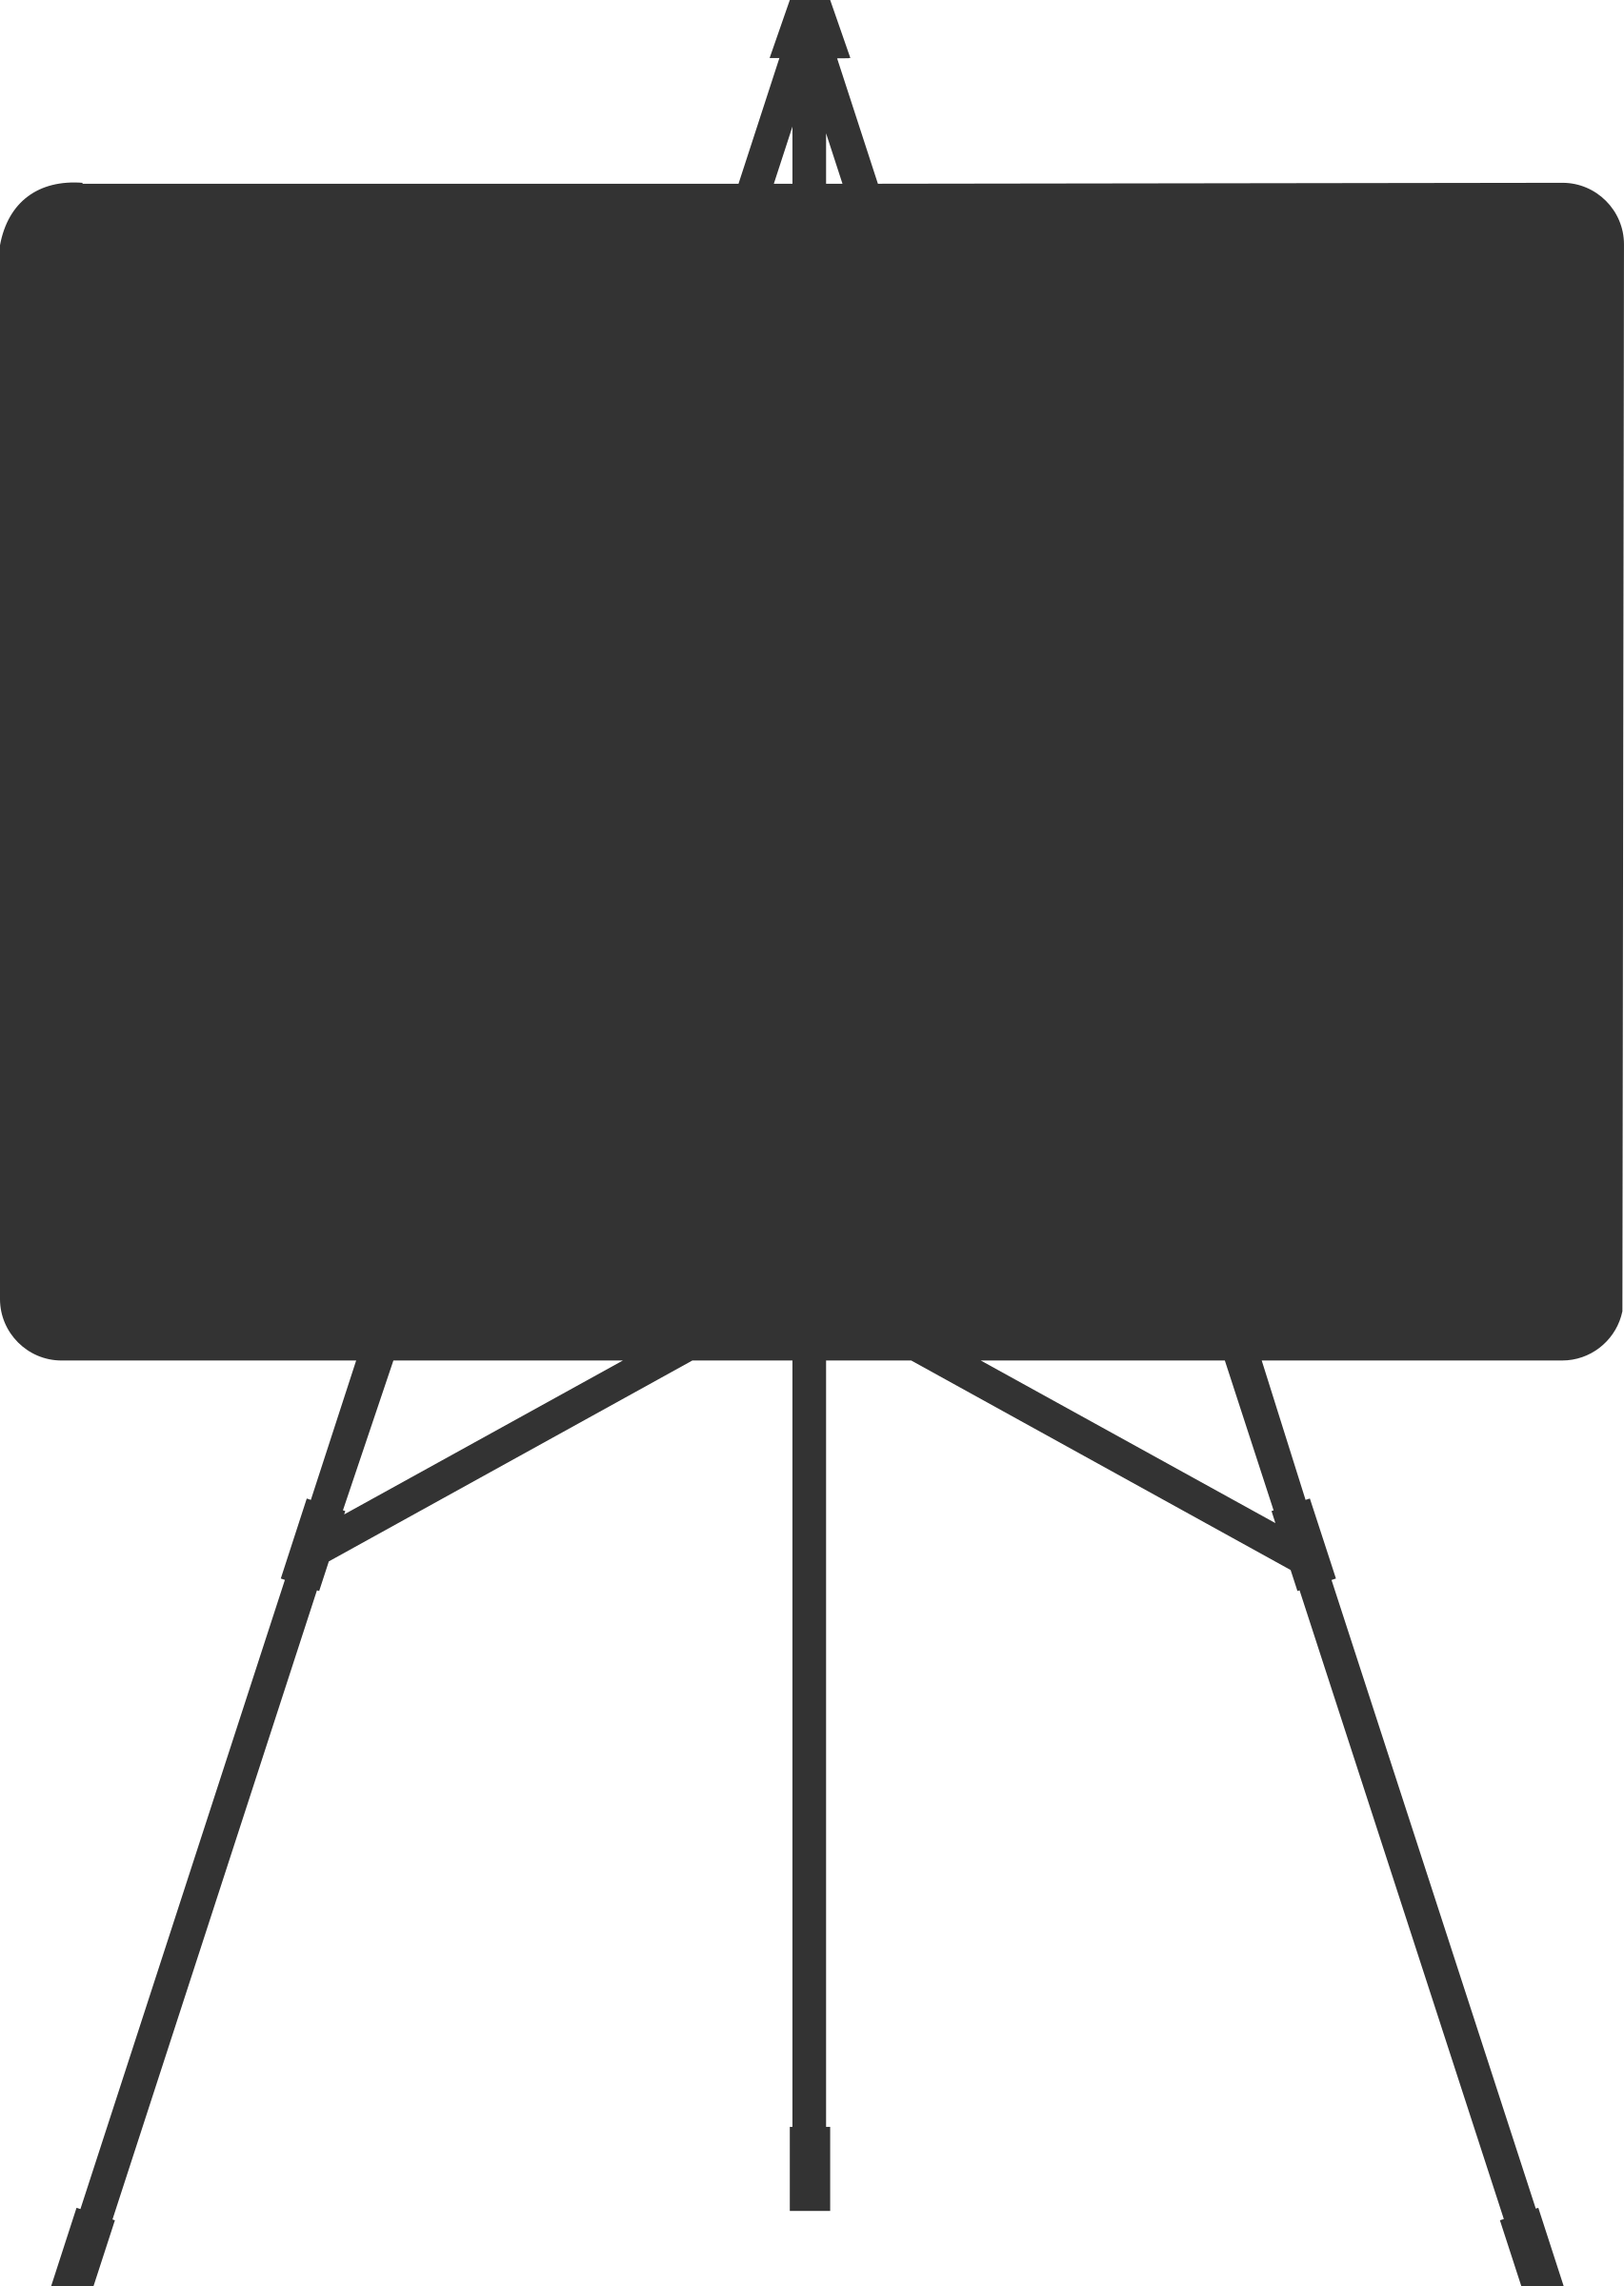 Drawing clipart drawing board. Download png image mart